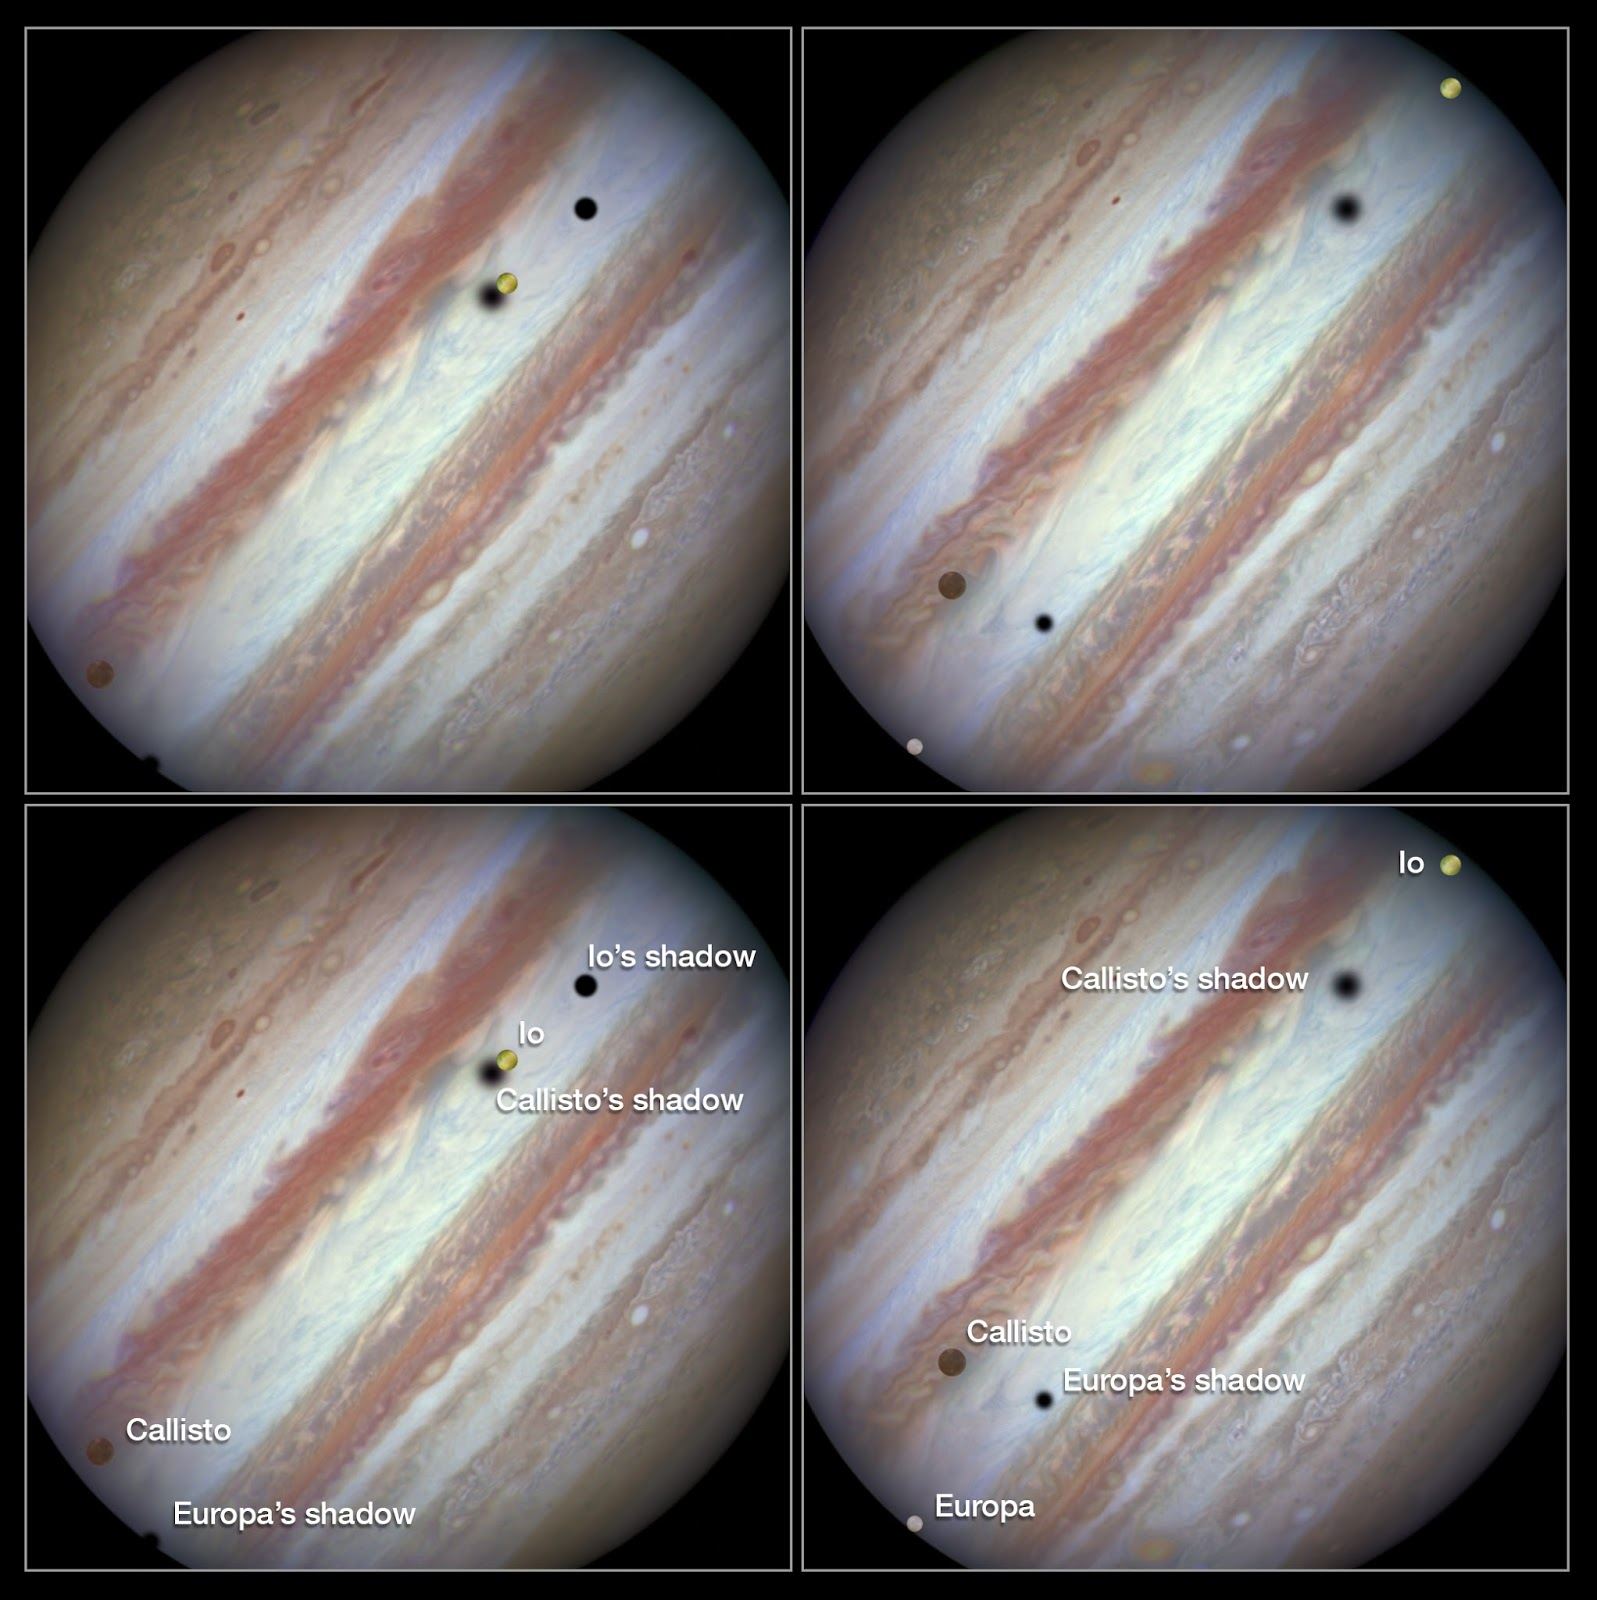 Three moons and their shadows parade across Jupiter Three moons and their shadows parade across Jupiter   These new NASA/ESA Hubble Space Telescope images capture a rare occurrence as three of Jupiter's largest moons parade across the giant gas planet's banded face.  The image on the left shows the Hubble observation at the beginning of the event. On the left is the moon Callisto and on the right, Io. The shadows from Europa, which cannot be seen in the image, Callisto, and Io are strung out from left to right.  The image on the right shows the end of the event, approximately 42 minutes later. Europa has entered the frame at lower left with slower moving Callisto above and to the right of it. Meanwhile Io — which orbits significantly closer to Jupiter and so appears to move much more quickly — is approaching the eastern limb of the planet. Whilst Callisto's shadow seems hardly to have moved Io's has set over the planet's eastern edge and Europa's has risen further in the west.  Image Credit: NASA, ESA, Hubble Heritage Team Explanation from: http://www.spacetelescope.org/images/heic1504a/